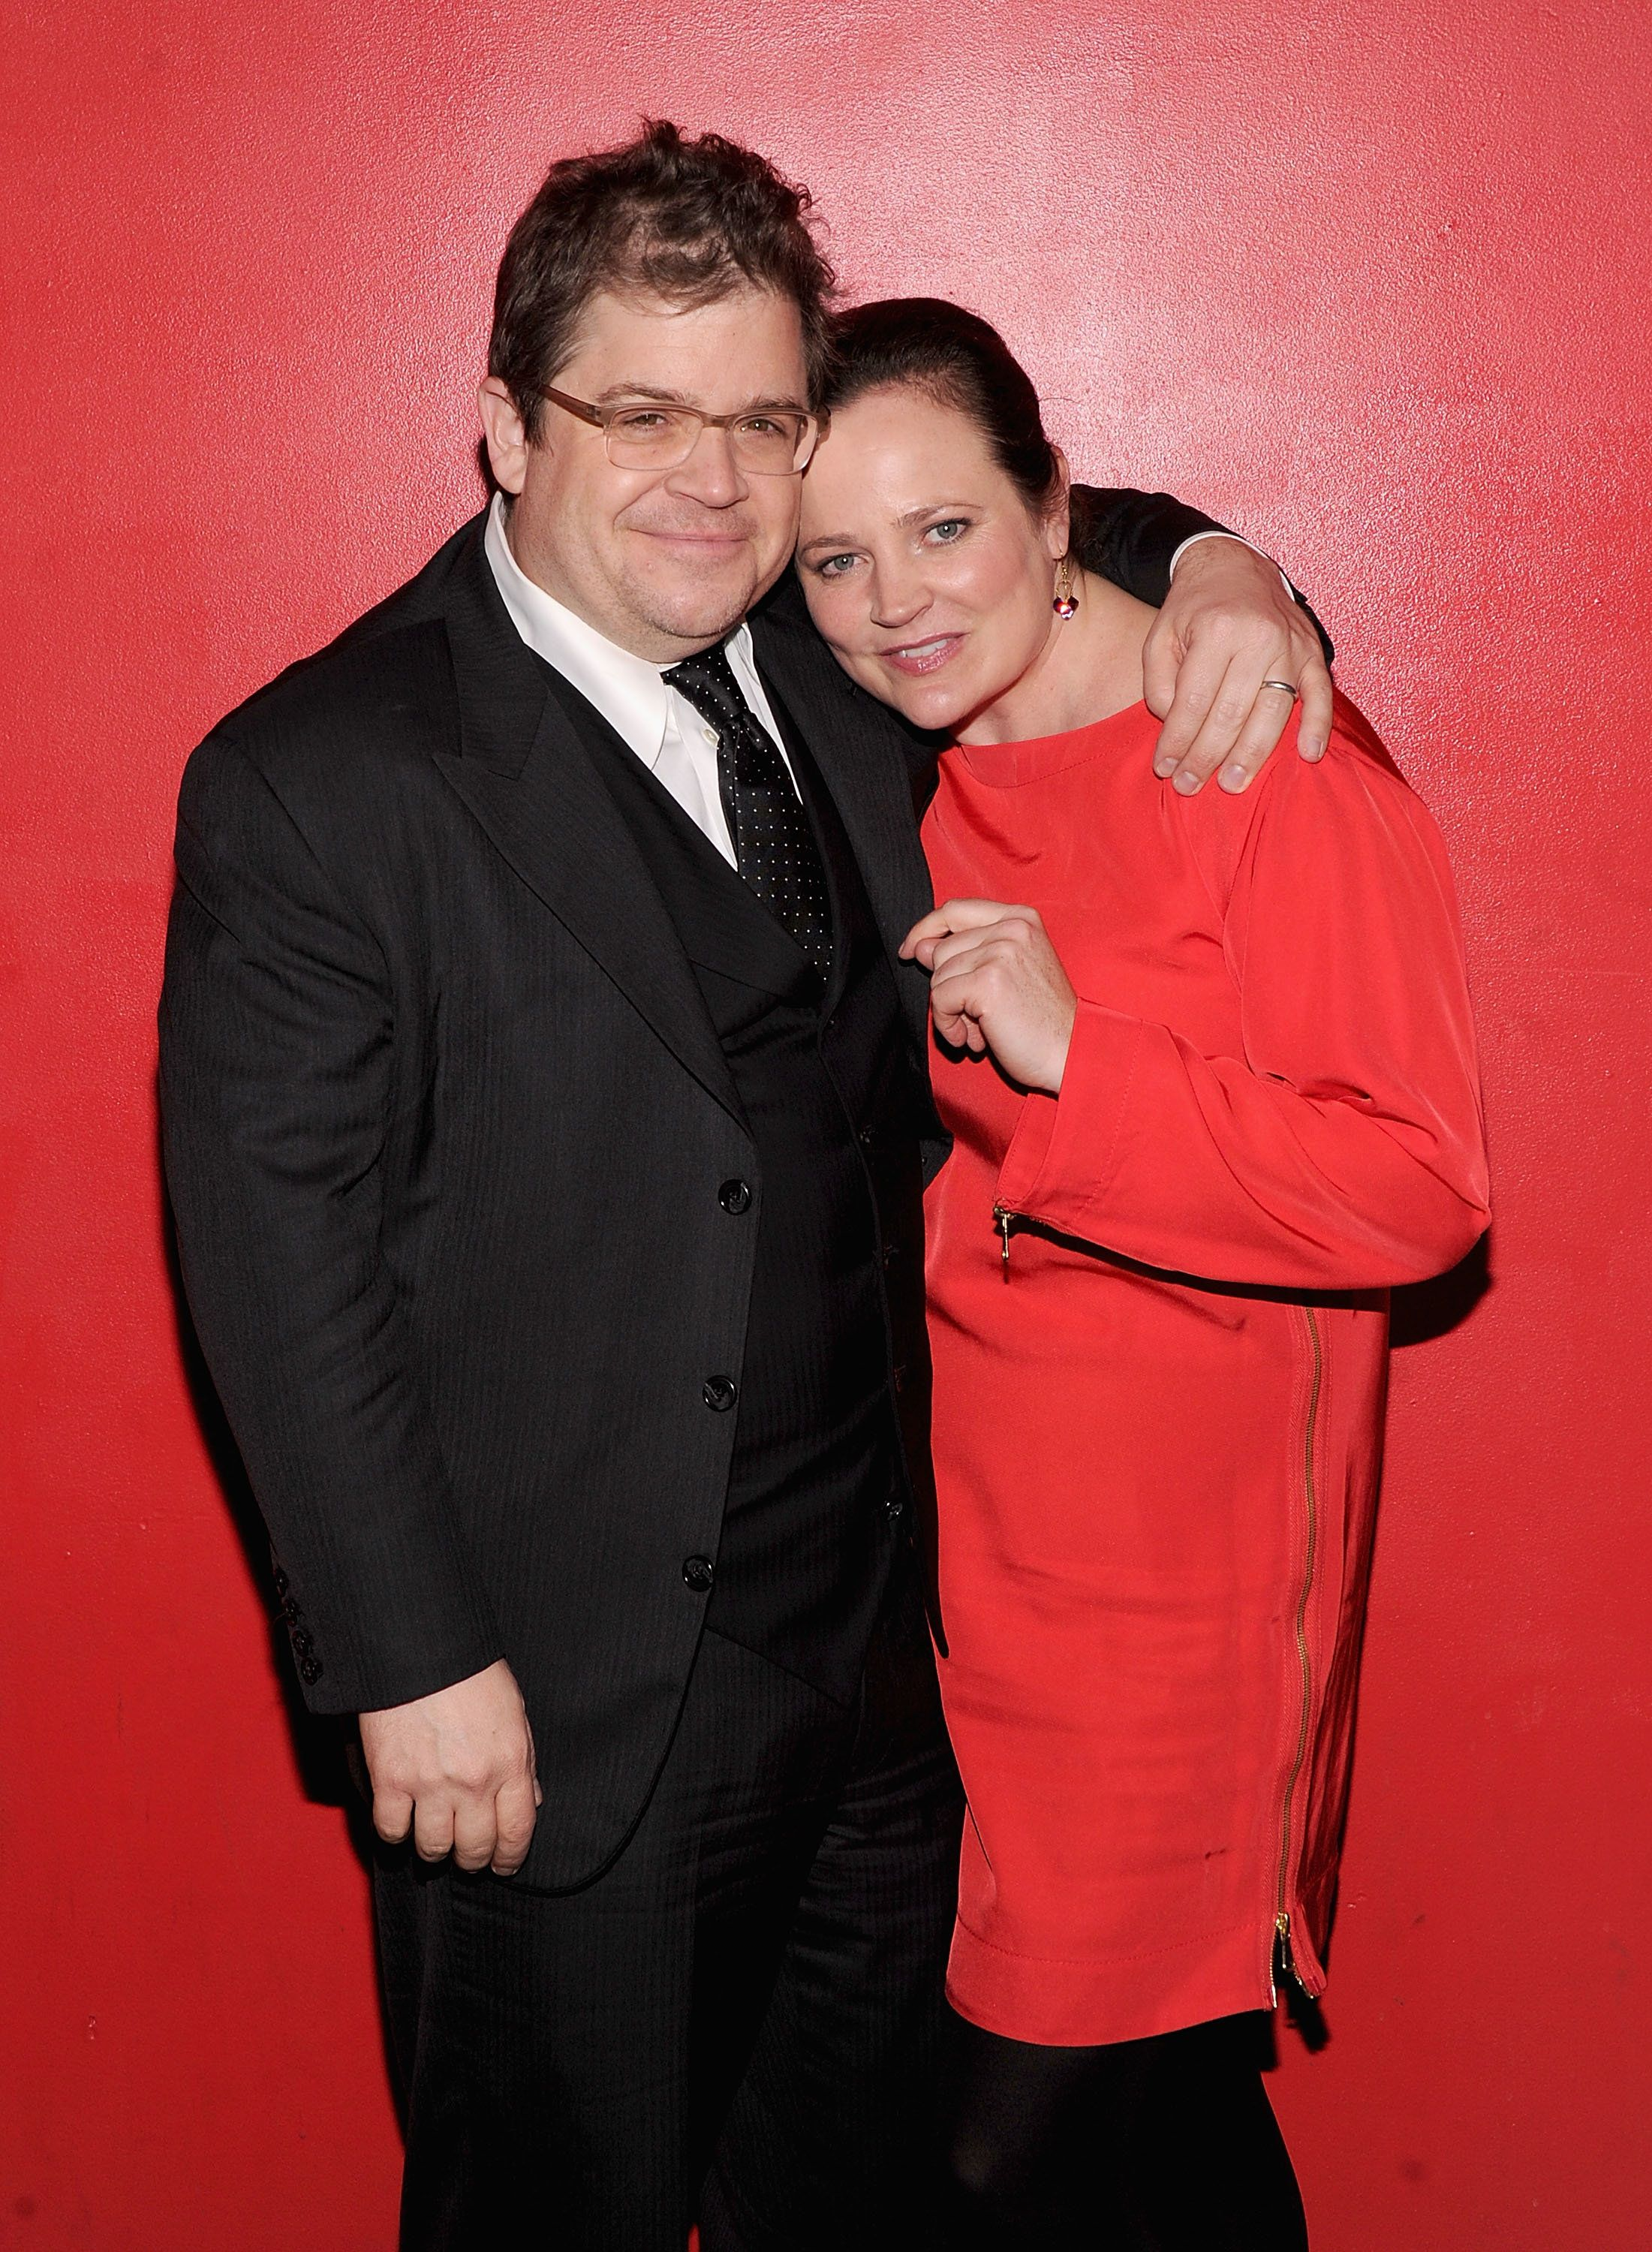 NEW YORK, NY - DECEMBER 08:  Patton Oswalt and Michelle McNamara attend the 'Young Adult' world premiere after party at the Hudson Terrace on December 8, 2011 in New York City.  (Photo by Jamie McCarthy/Getty Images)